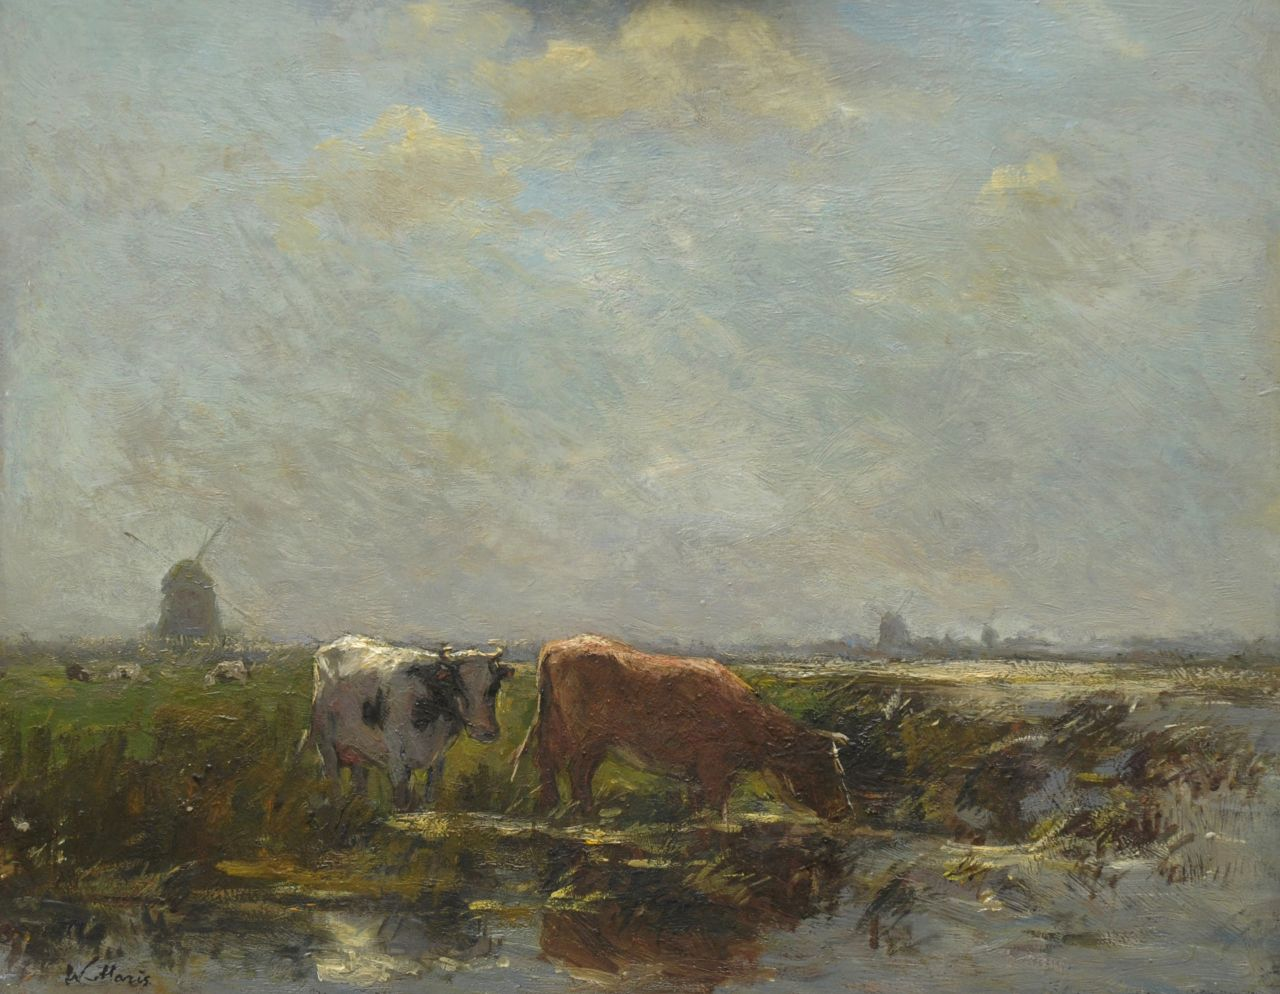 Maris W.  | Willem Maris, Polder landscape with cattle and windmills, oil on panel 38.3 x 47.2 cm, signed l.l.